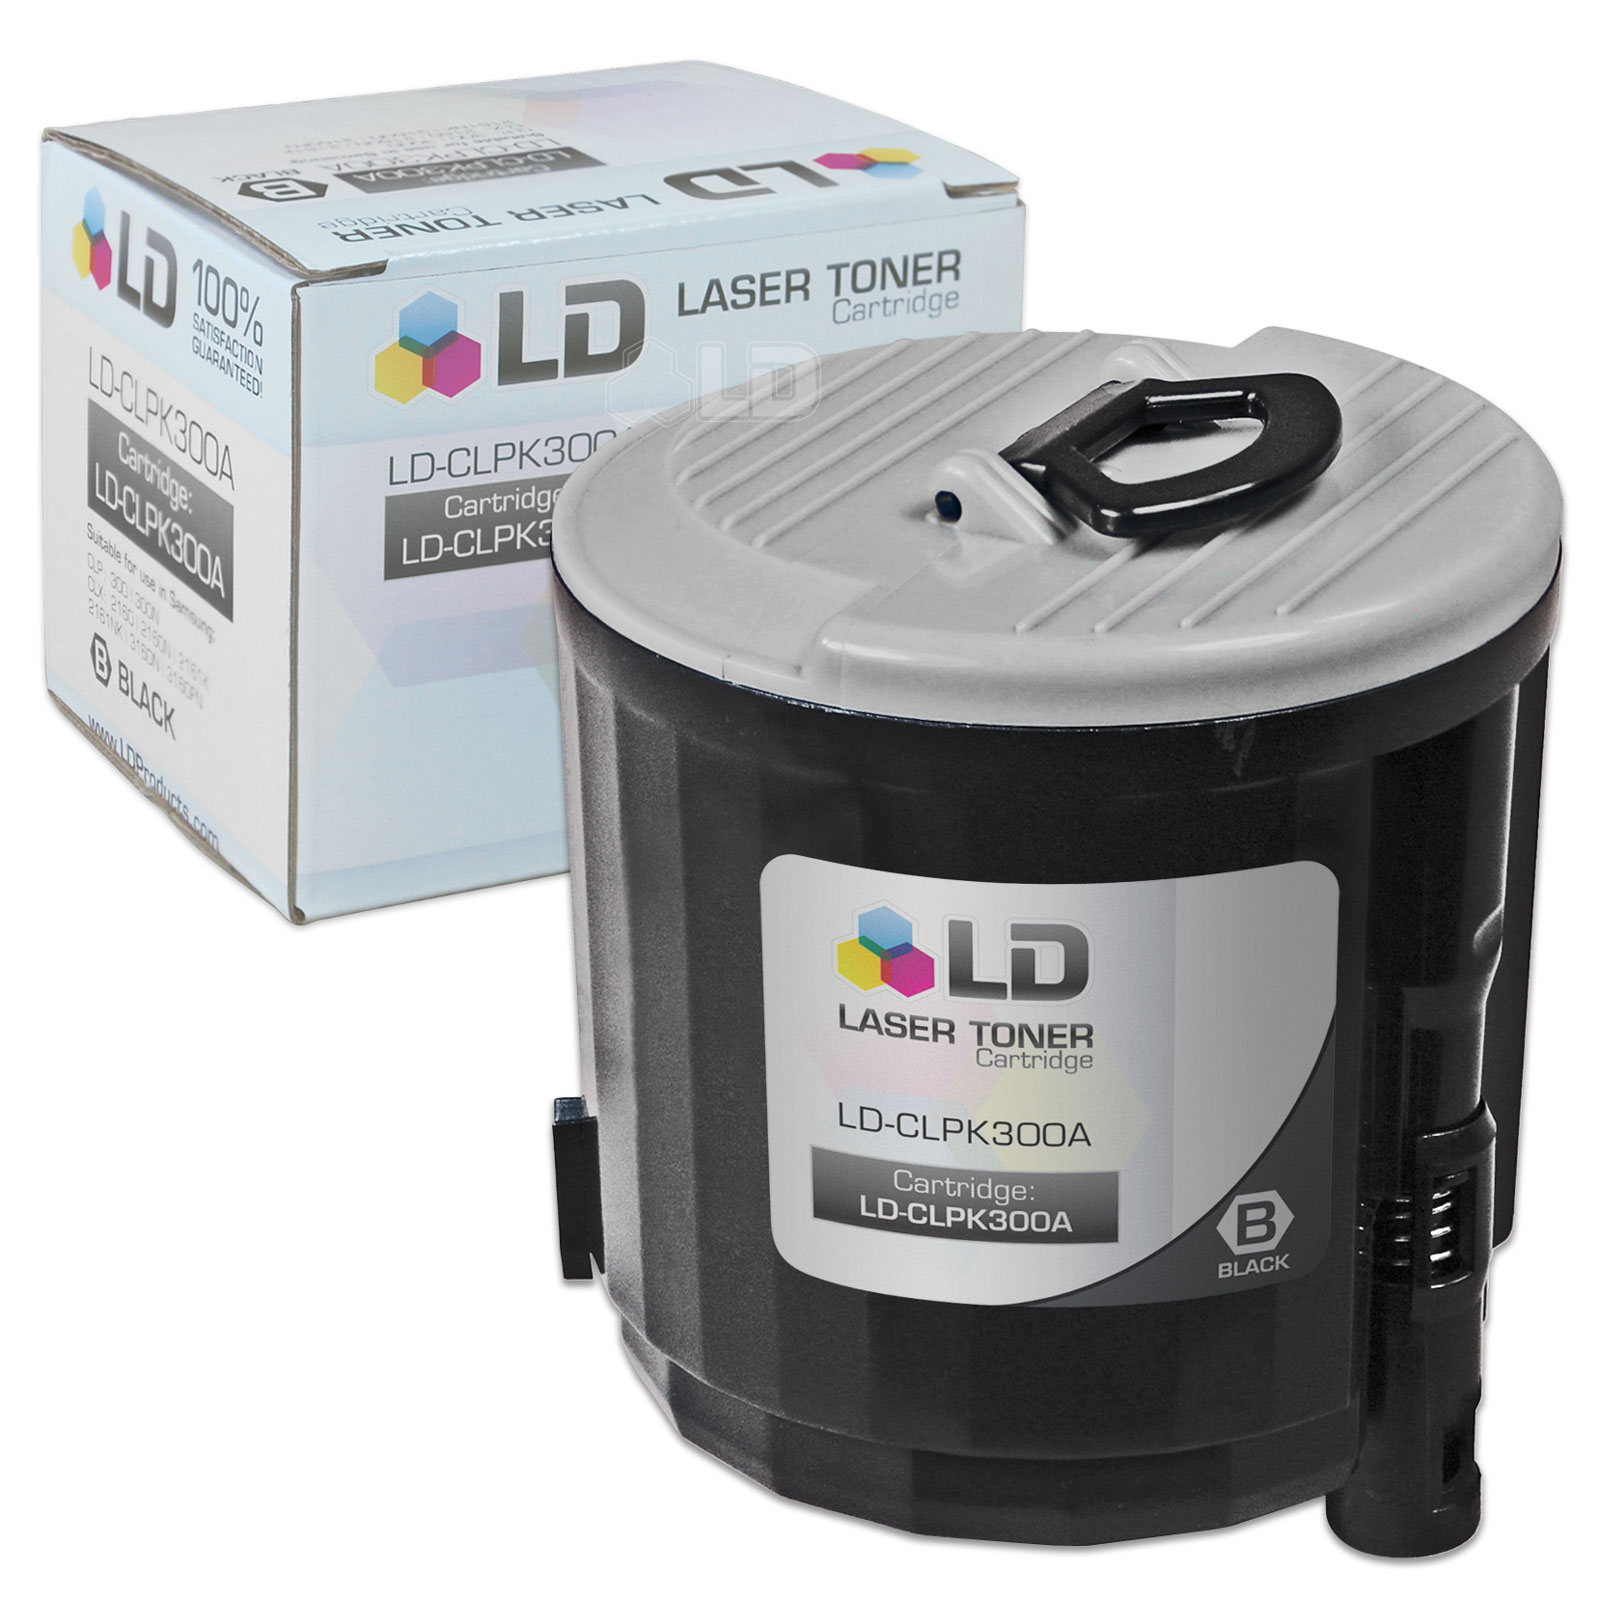 LD Compatible Replacement CLP-K300A Black Laser Toner Cartridge for use in Samsung CLP-300, CLP-300N, CLX-2160, &